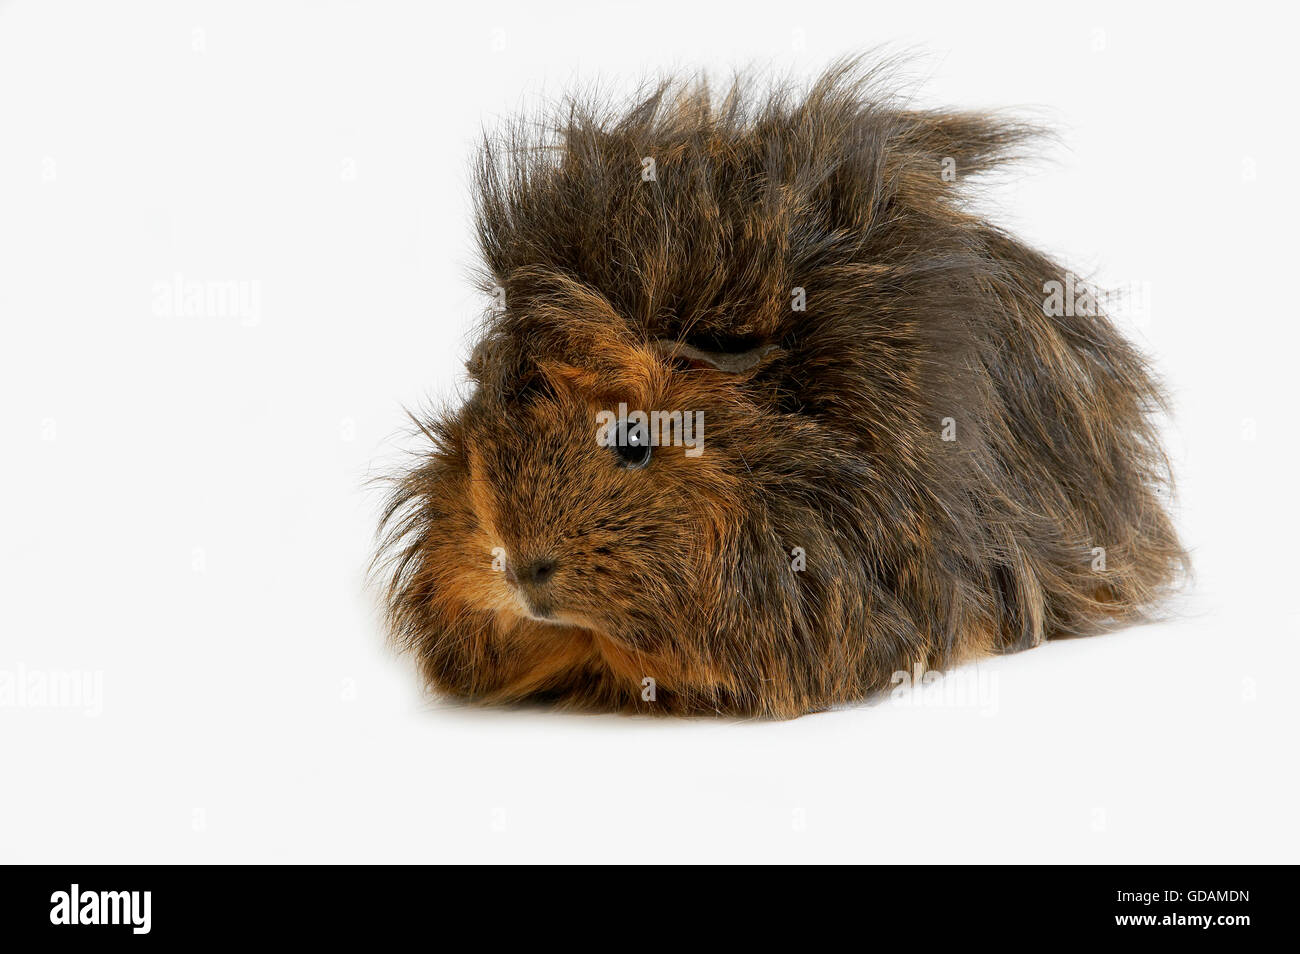 Background image mdn - Long Hair Guinea Pig Cavia Porcellus Against White Background